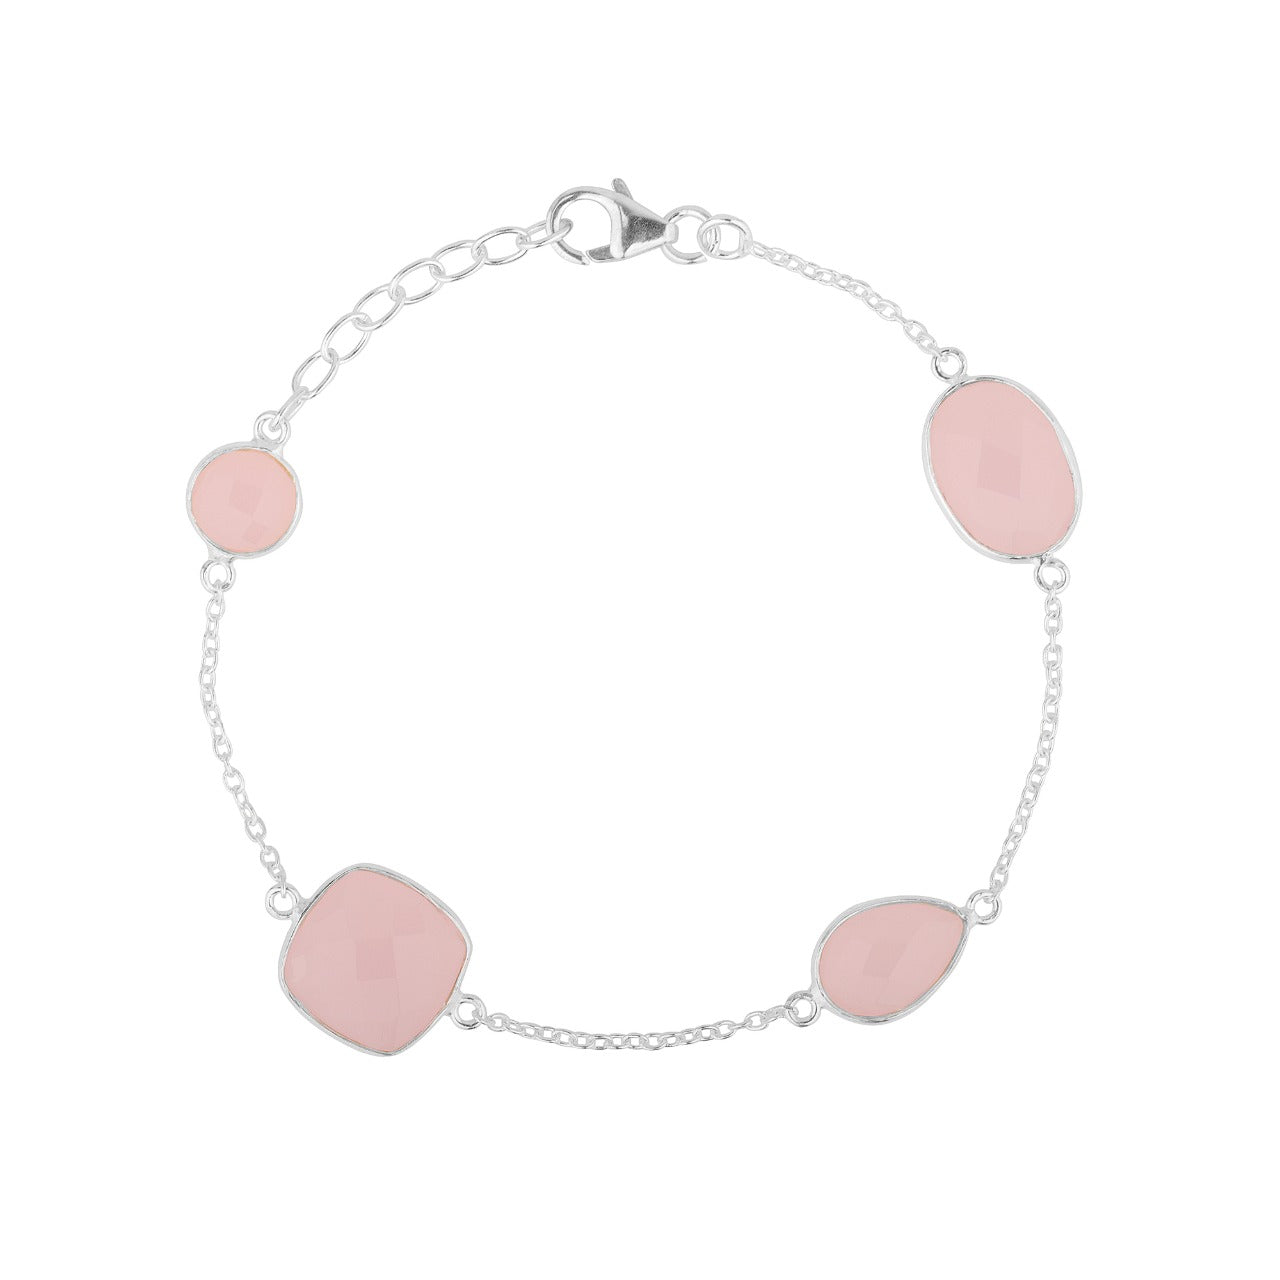 Rose Quartz Bracelet with 4 different stone sizes